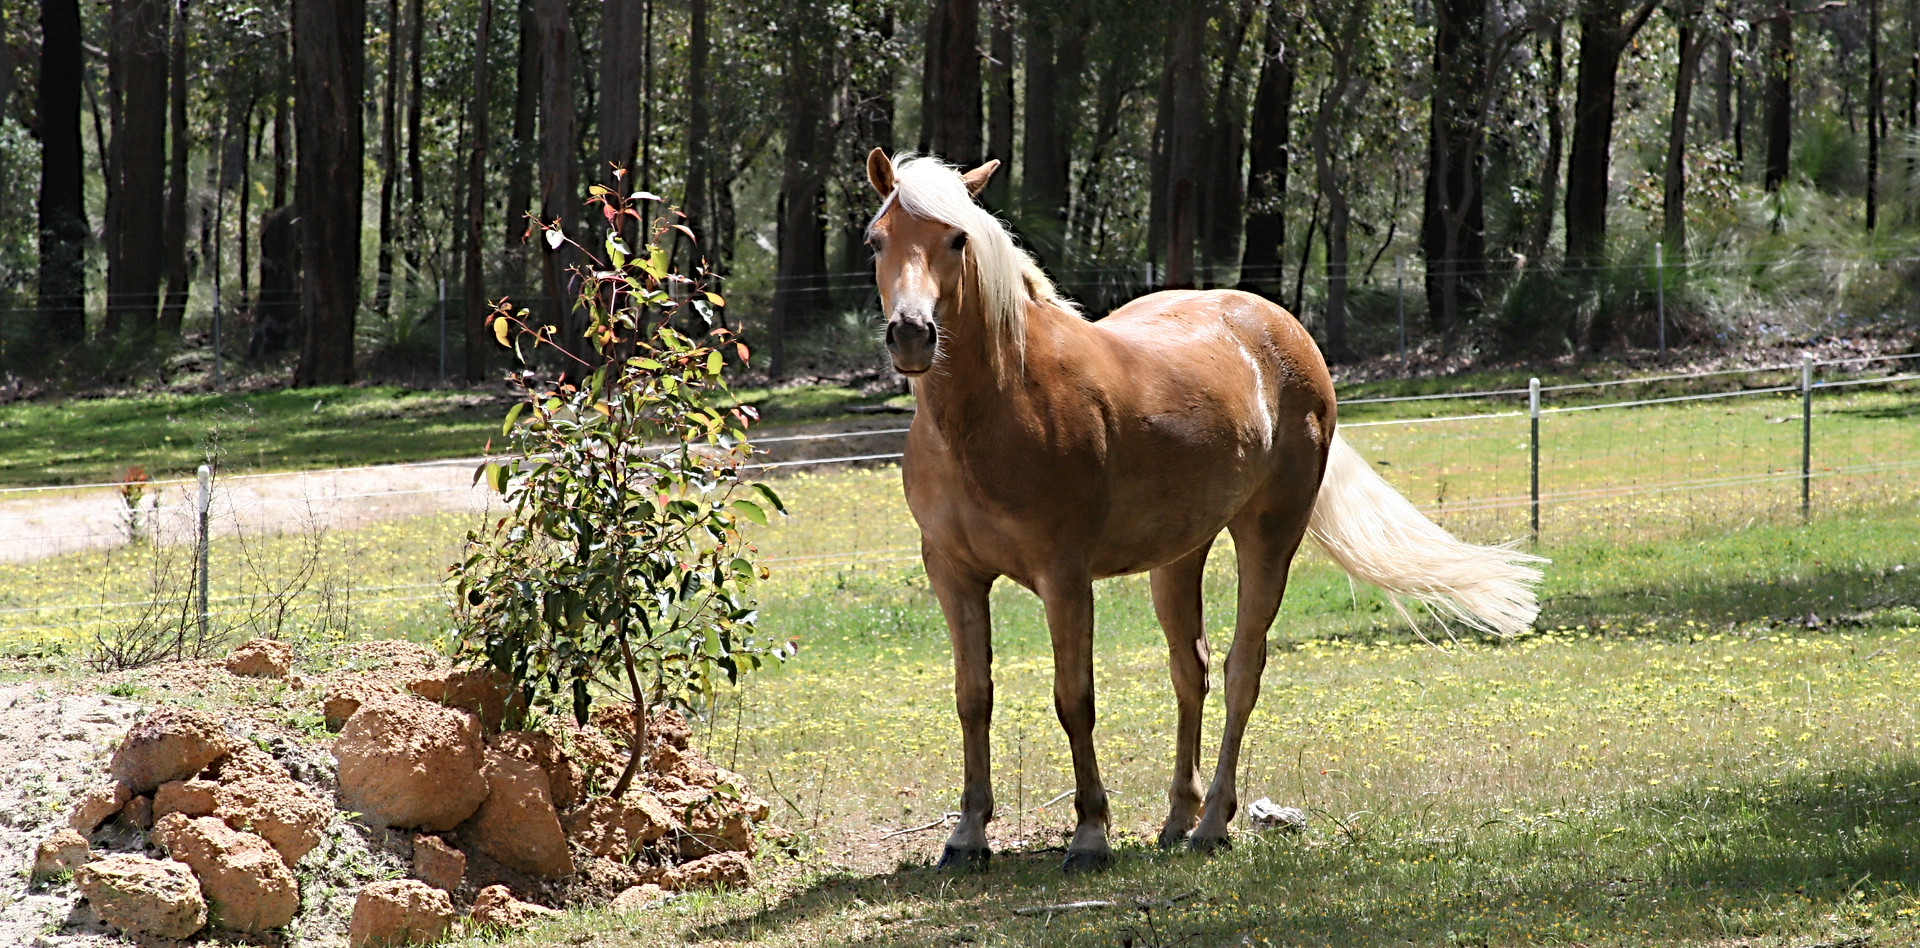 Stoltzie - One of our Haflinger Horses